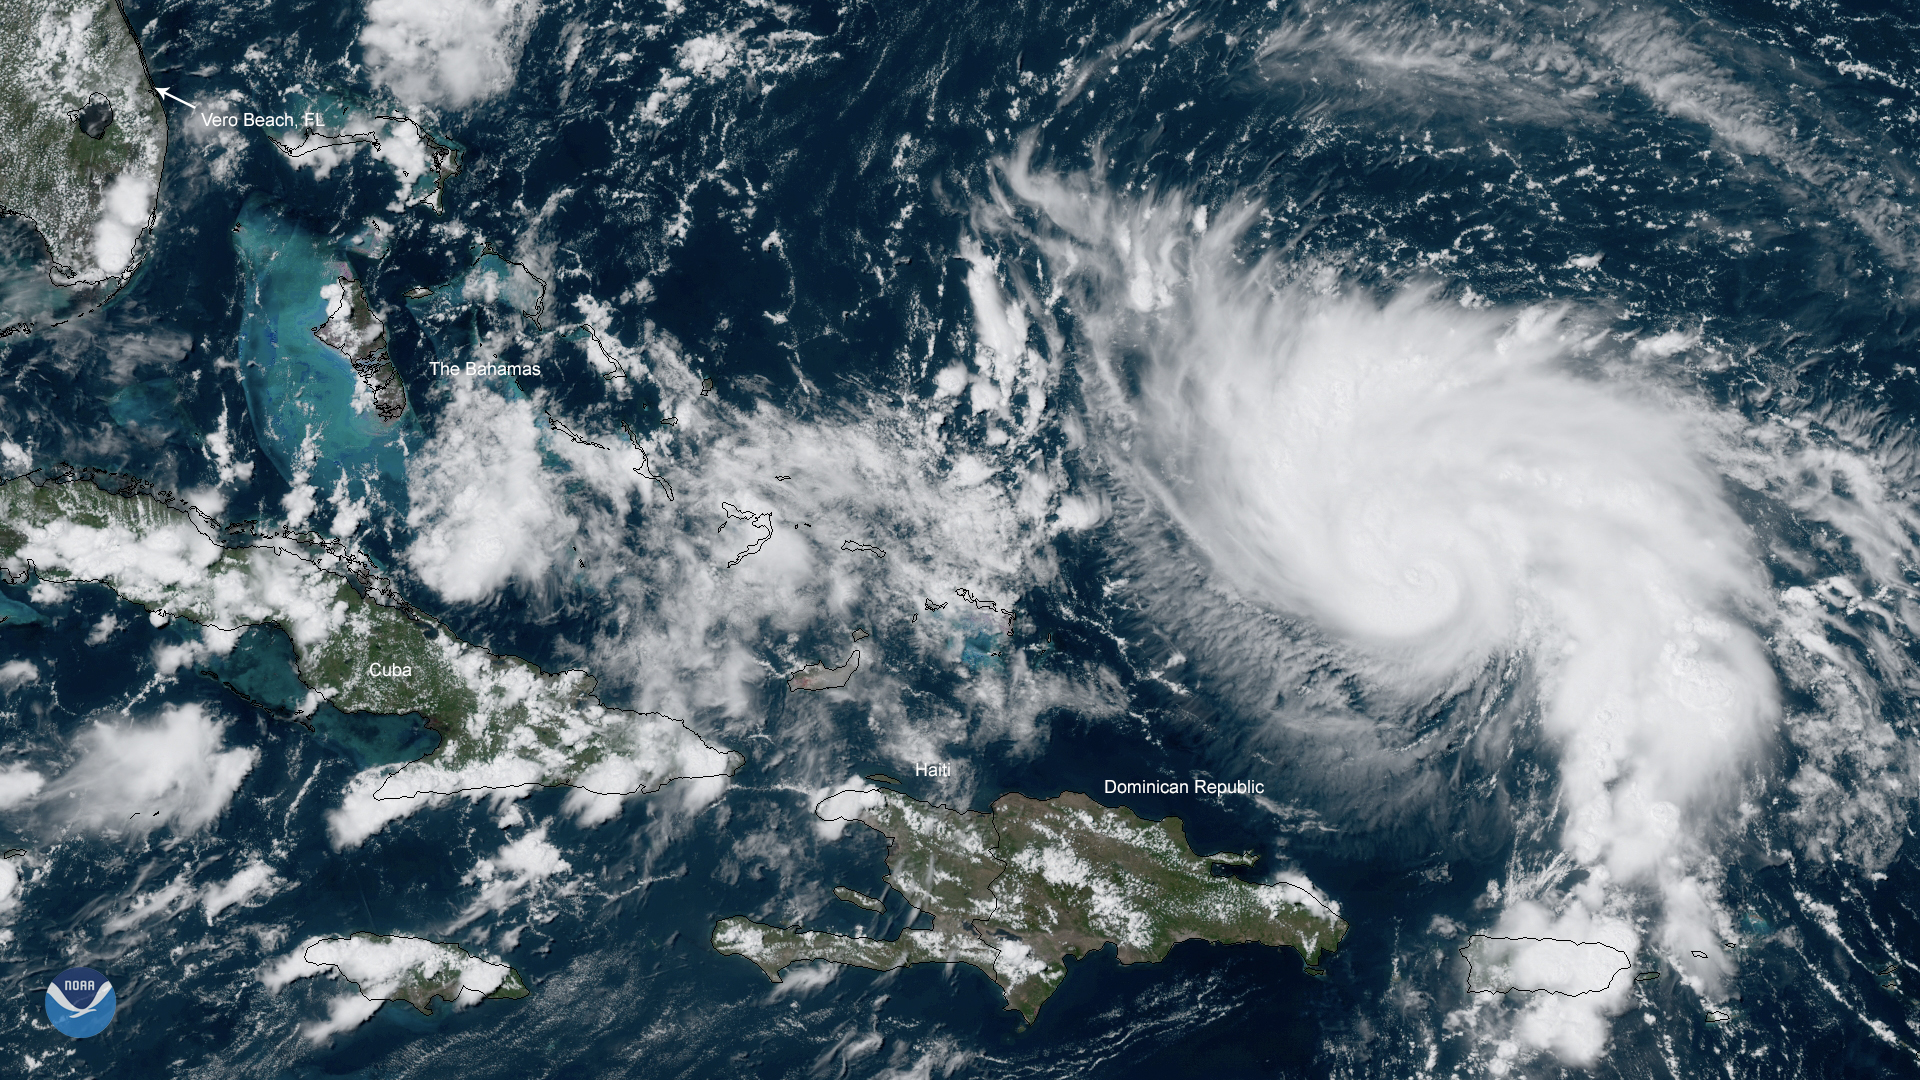 A satellite image of Hurricane Dorian, which is expected to cause tropical-storm-force winds in Florida over the weekend